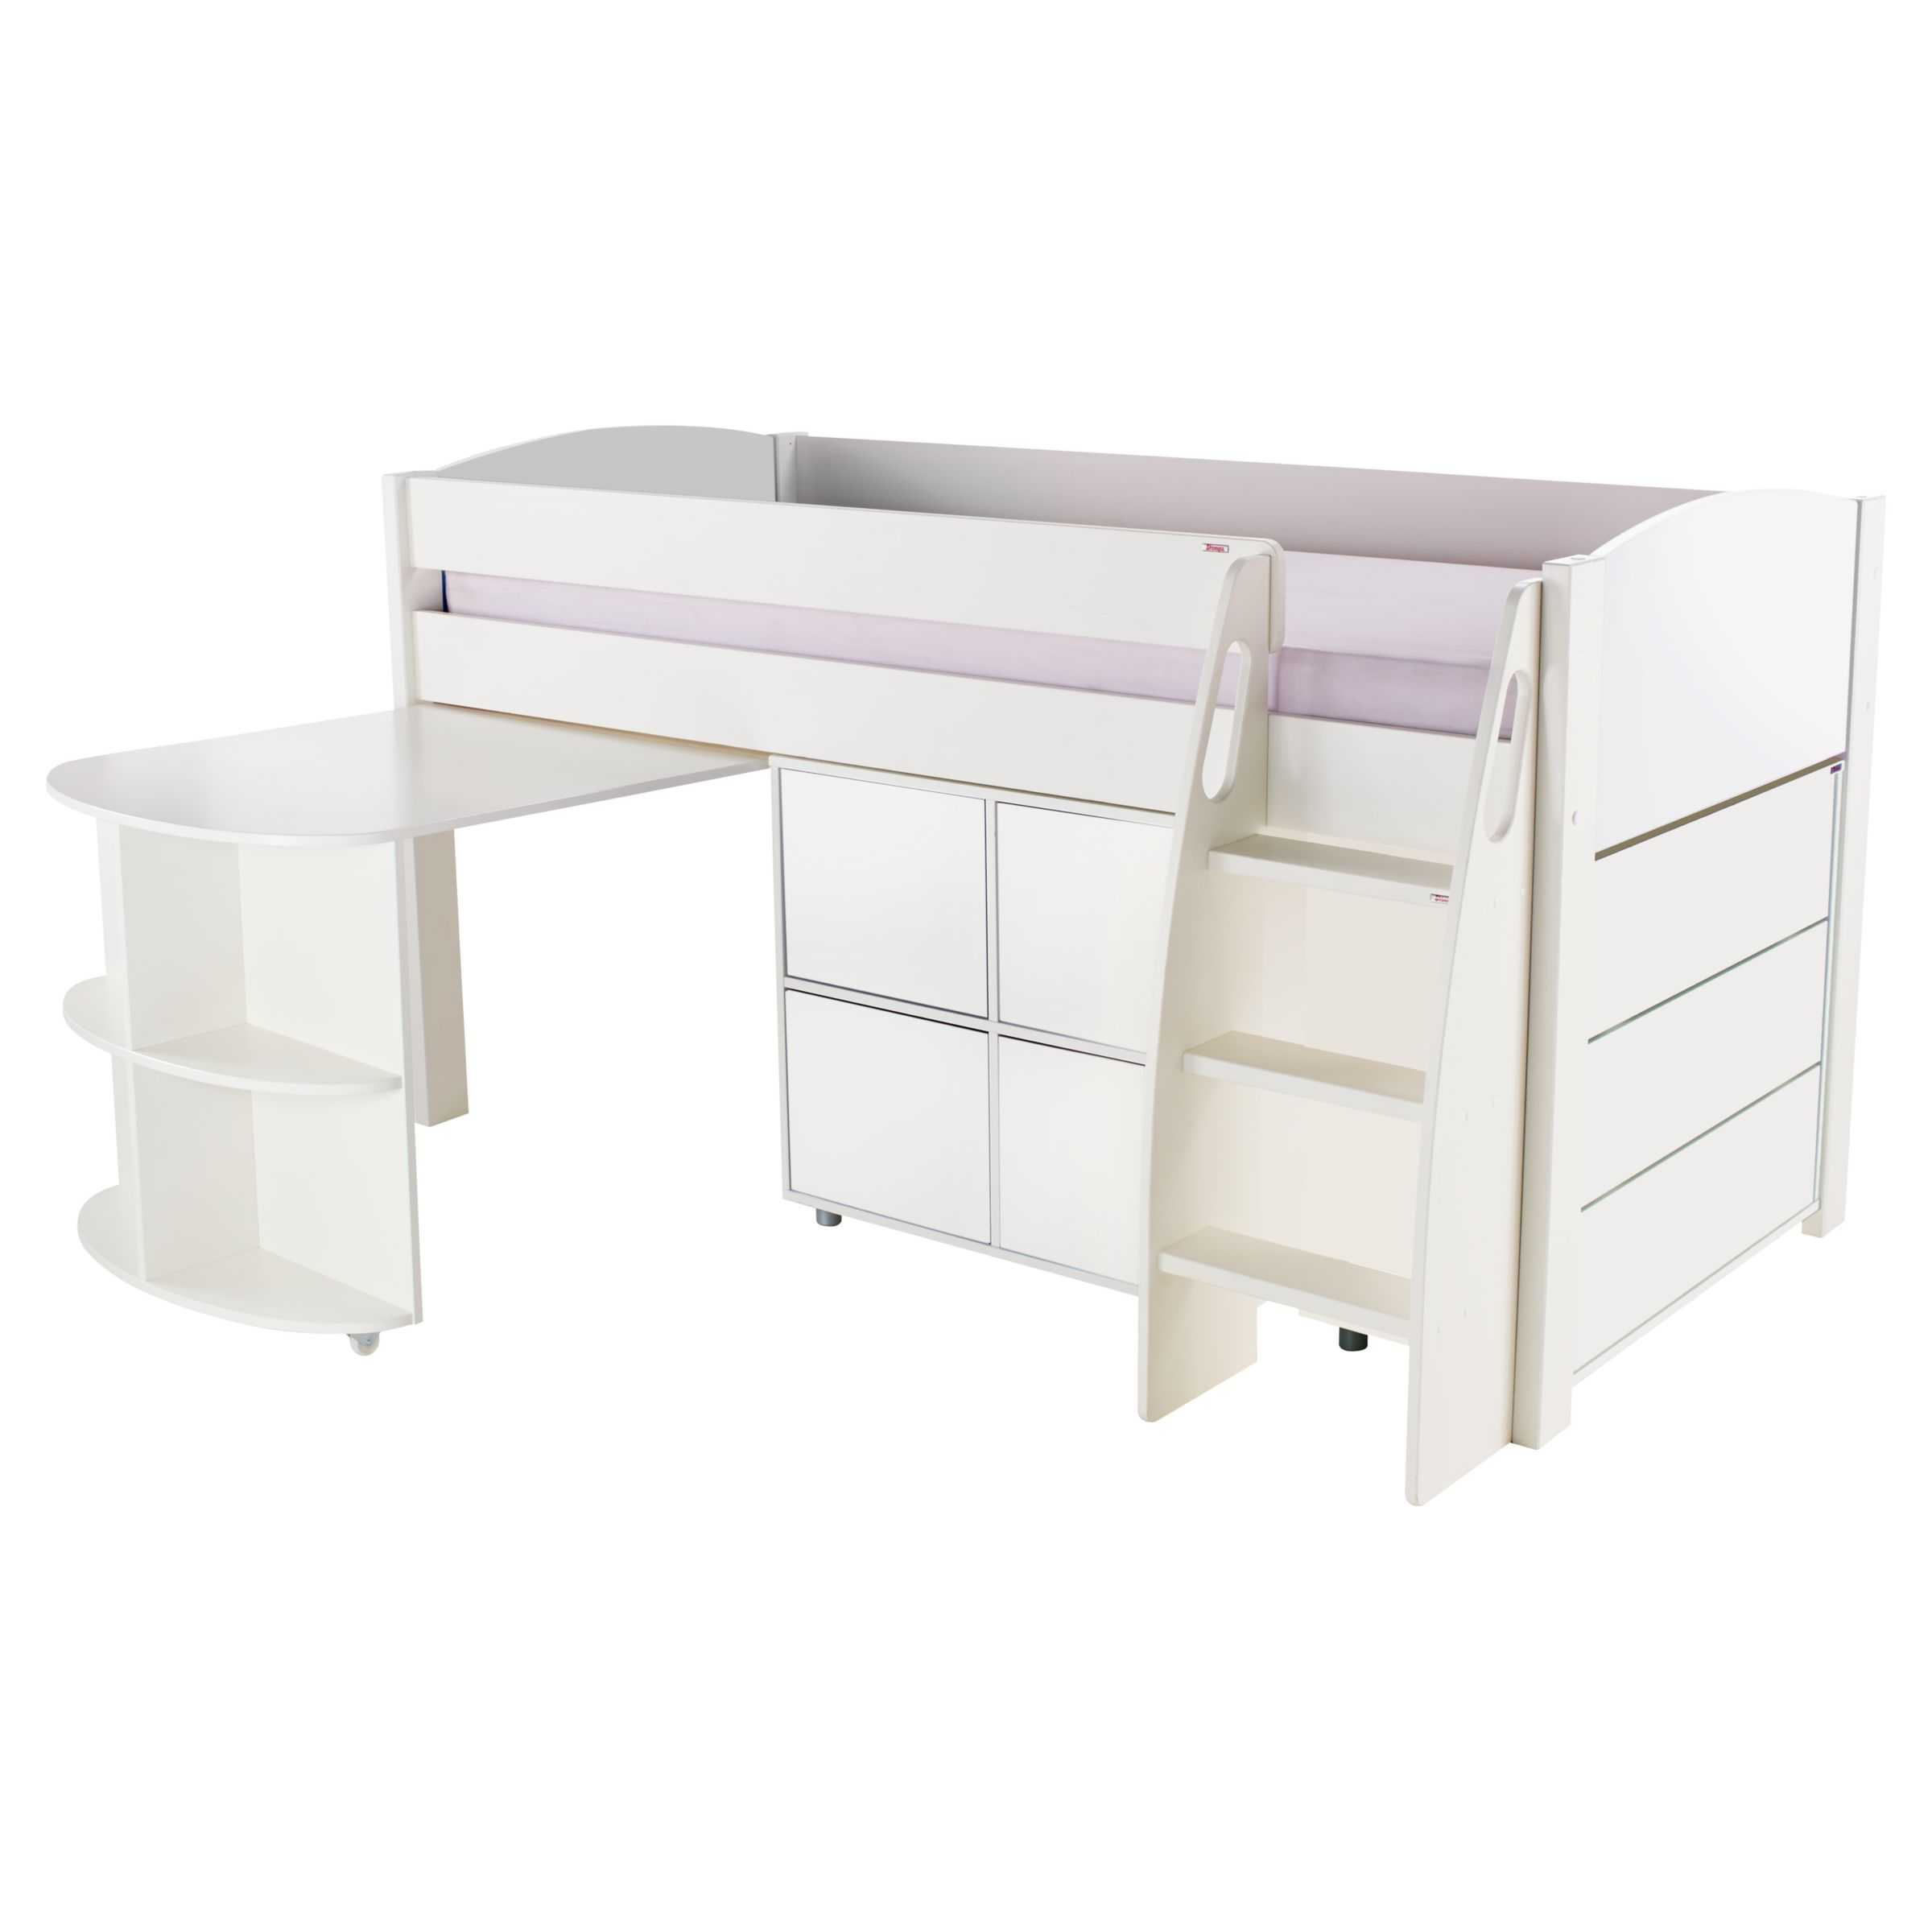 Stompa Stompa Uno S Plus Mid-Sleeper with Pull-Out Desk, 3 Drawer Chest and 4 Door Cube Unit